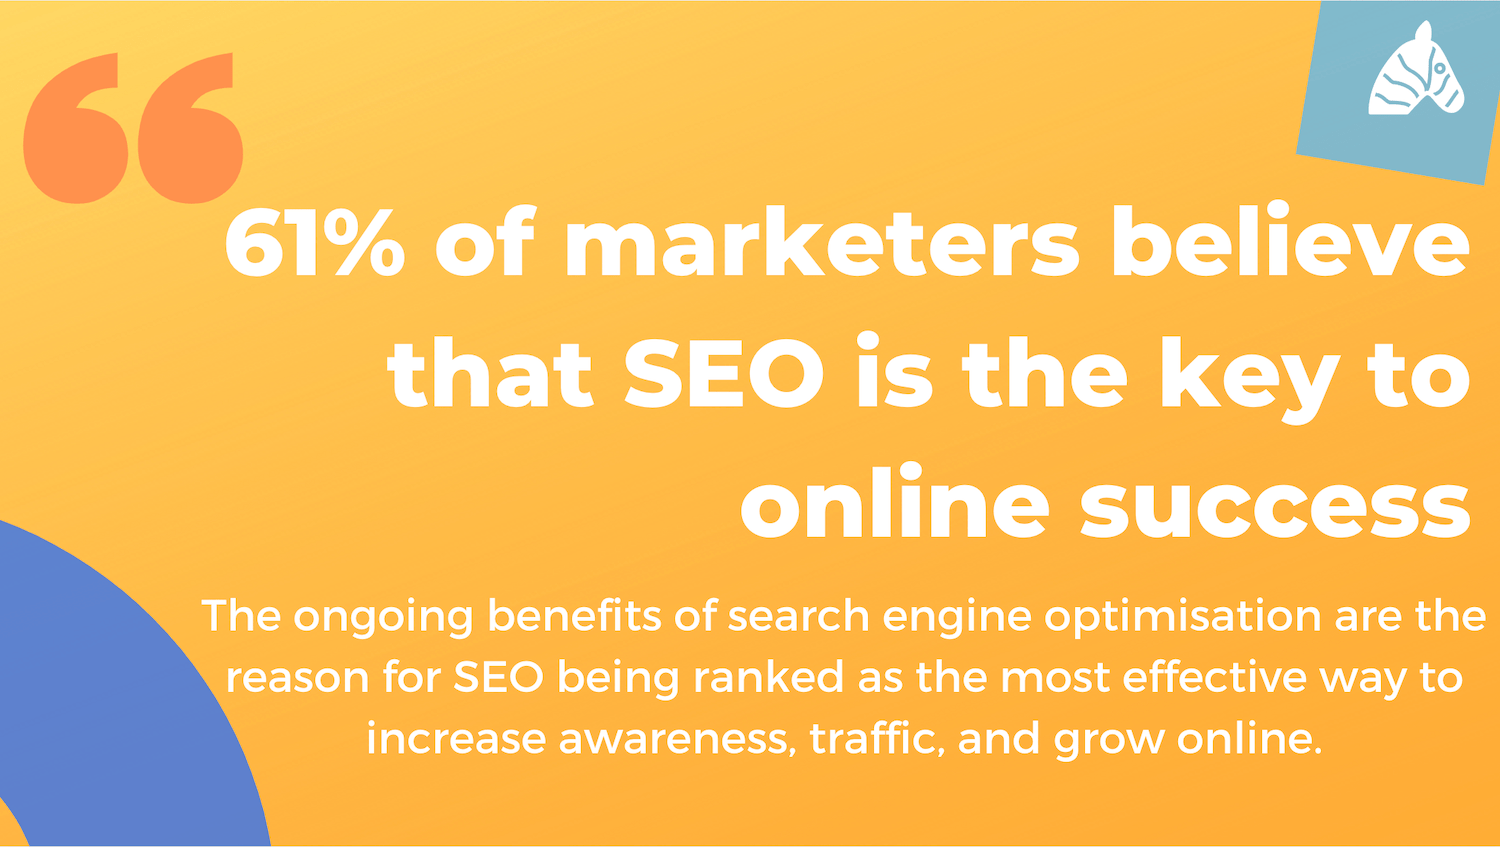 61% of marketers believe SEO is the key to online success